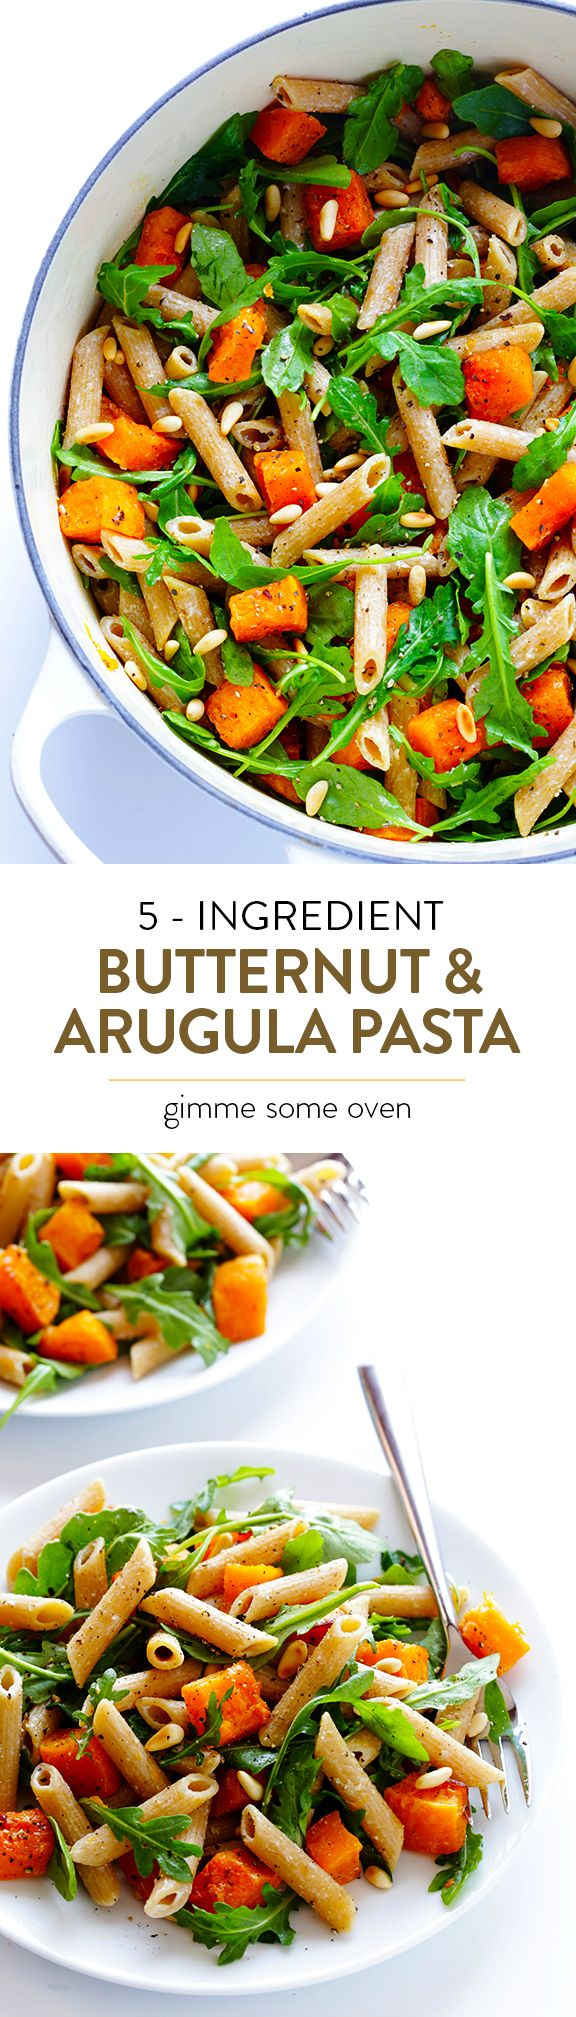 One of my new favorite meals!!  It's perfect for autumn, easy to make, and ridiculously good! | gimmesomeoven.com